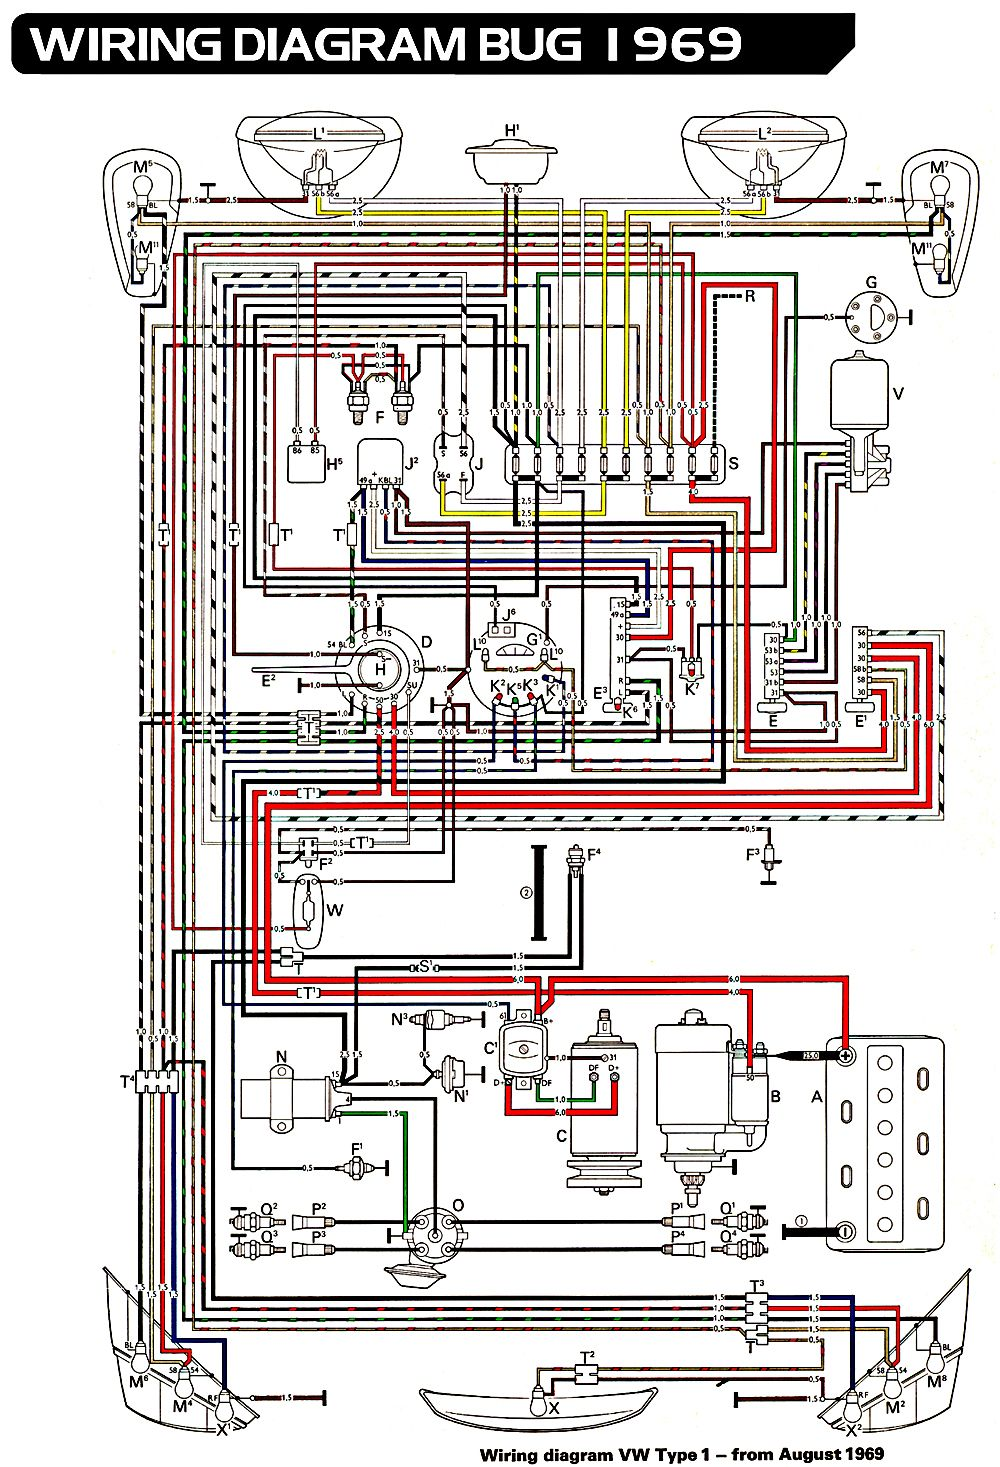 6d75c15875479254f26a32a8499d9044 volkswagen beetle wiring diagram 1966 vw beetle wiring vw bug wiring diagram at readyjetset.co